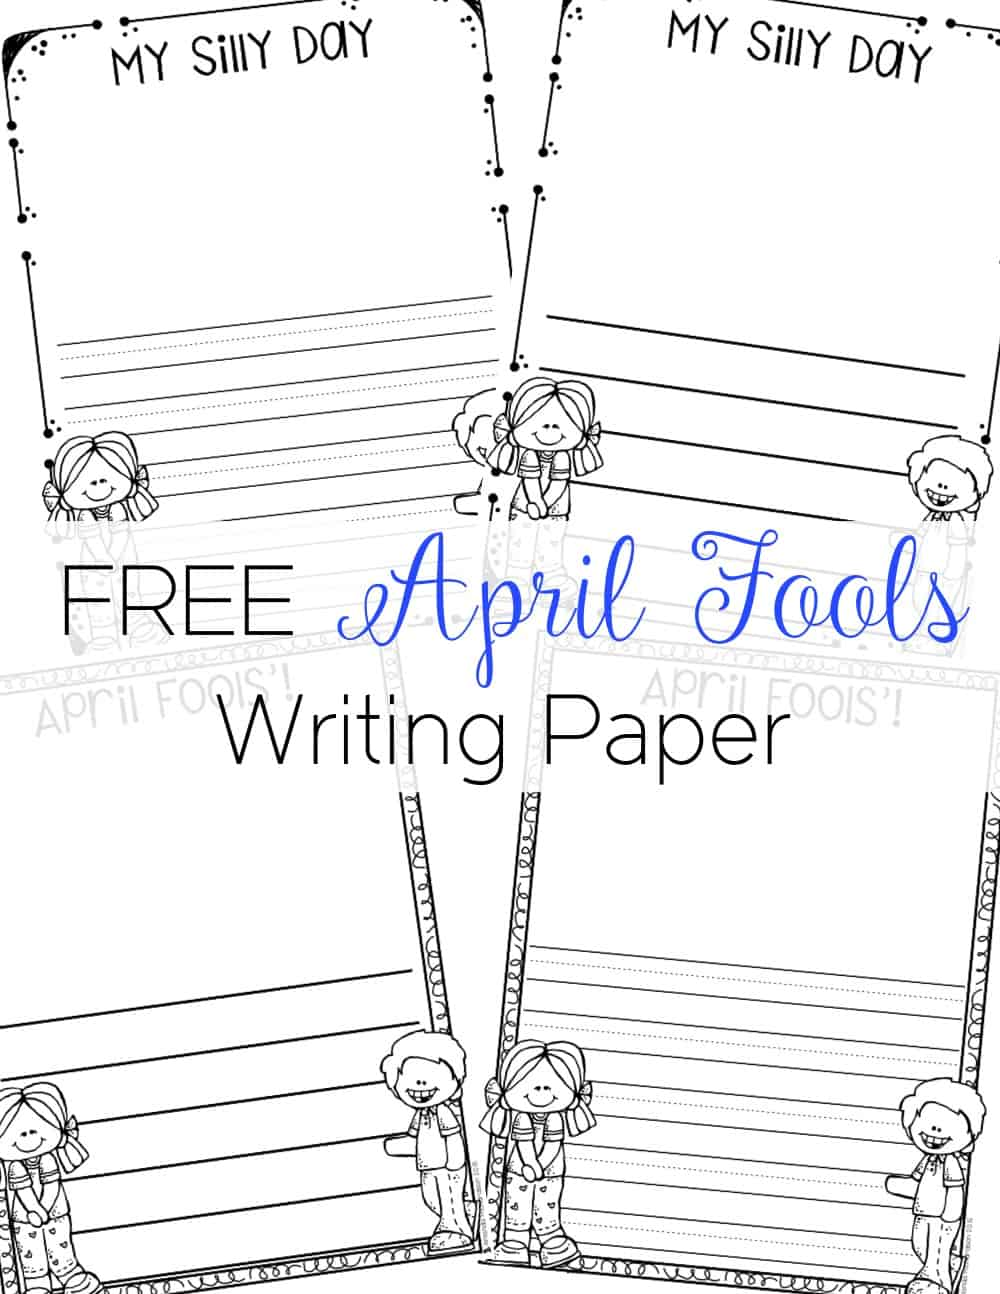 April fools writing is a fun opportunity for students to express their silly personalities and be creative! They also could write about cause and effect using the day as a prompt! #freebie #freeprintable #aprilfoolsday #writingteacher #writingpaper